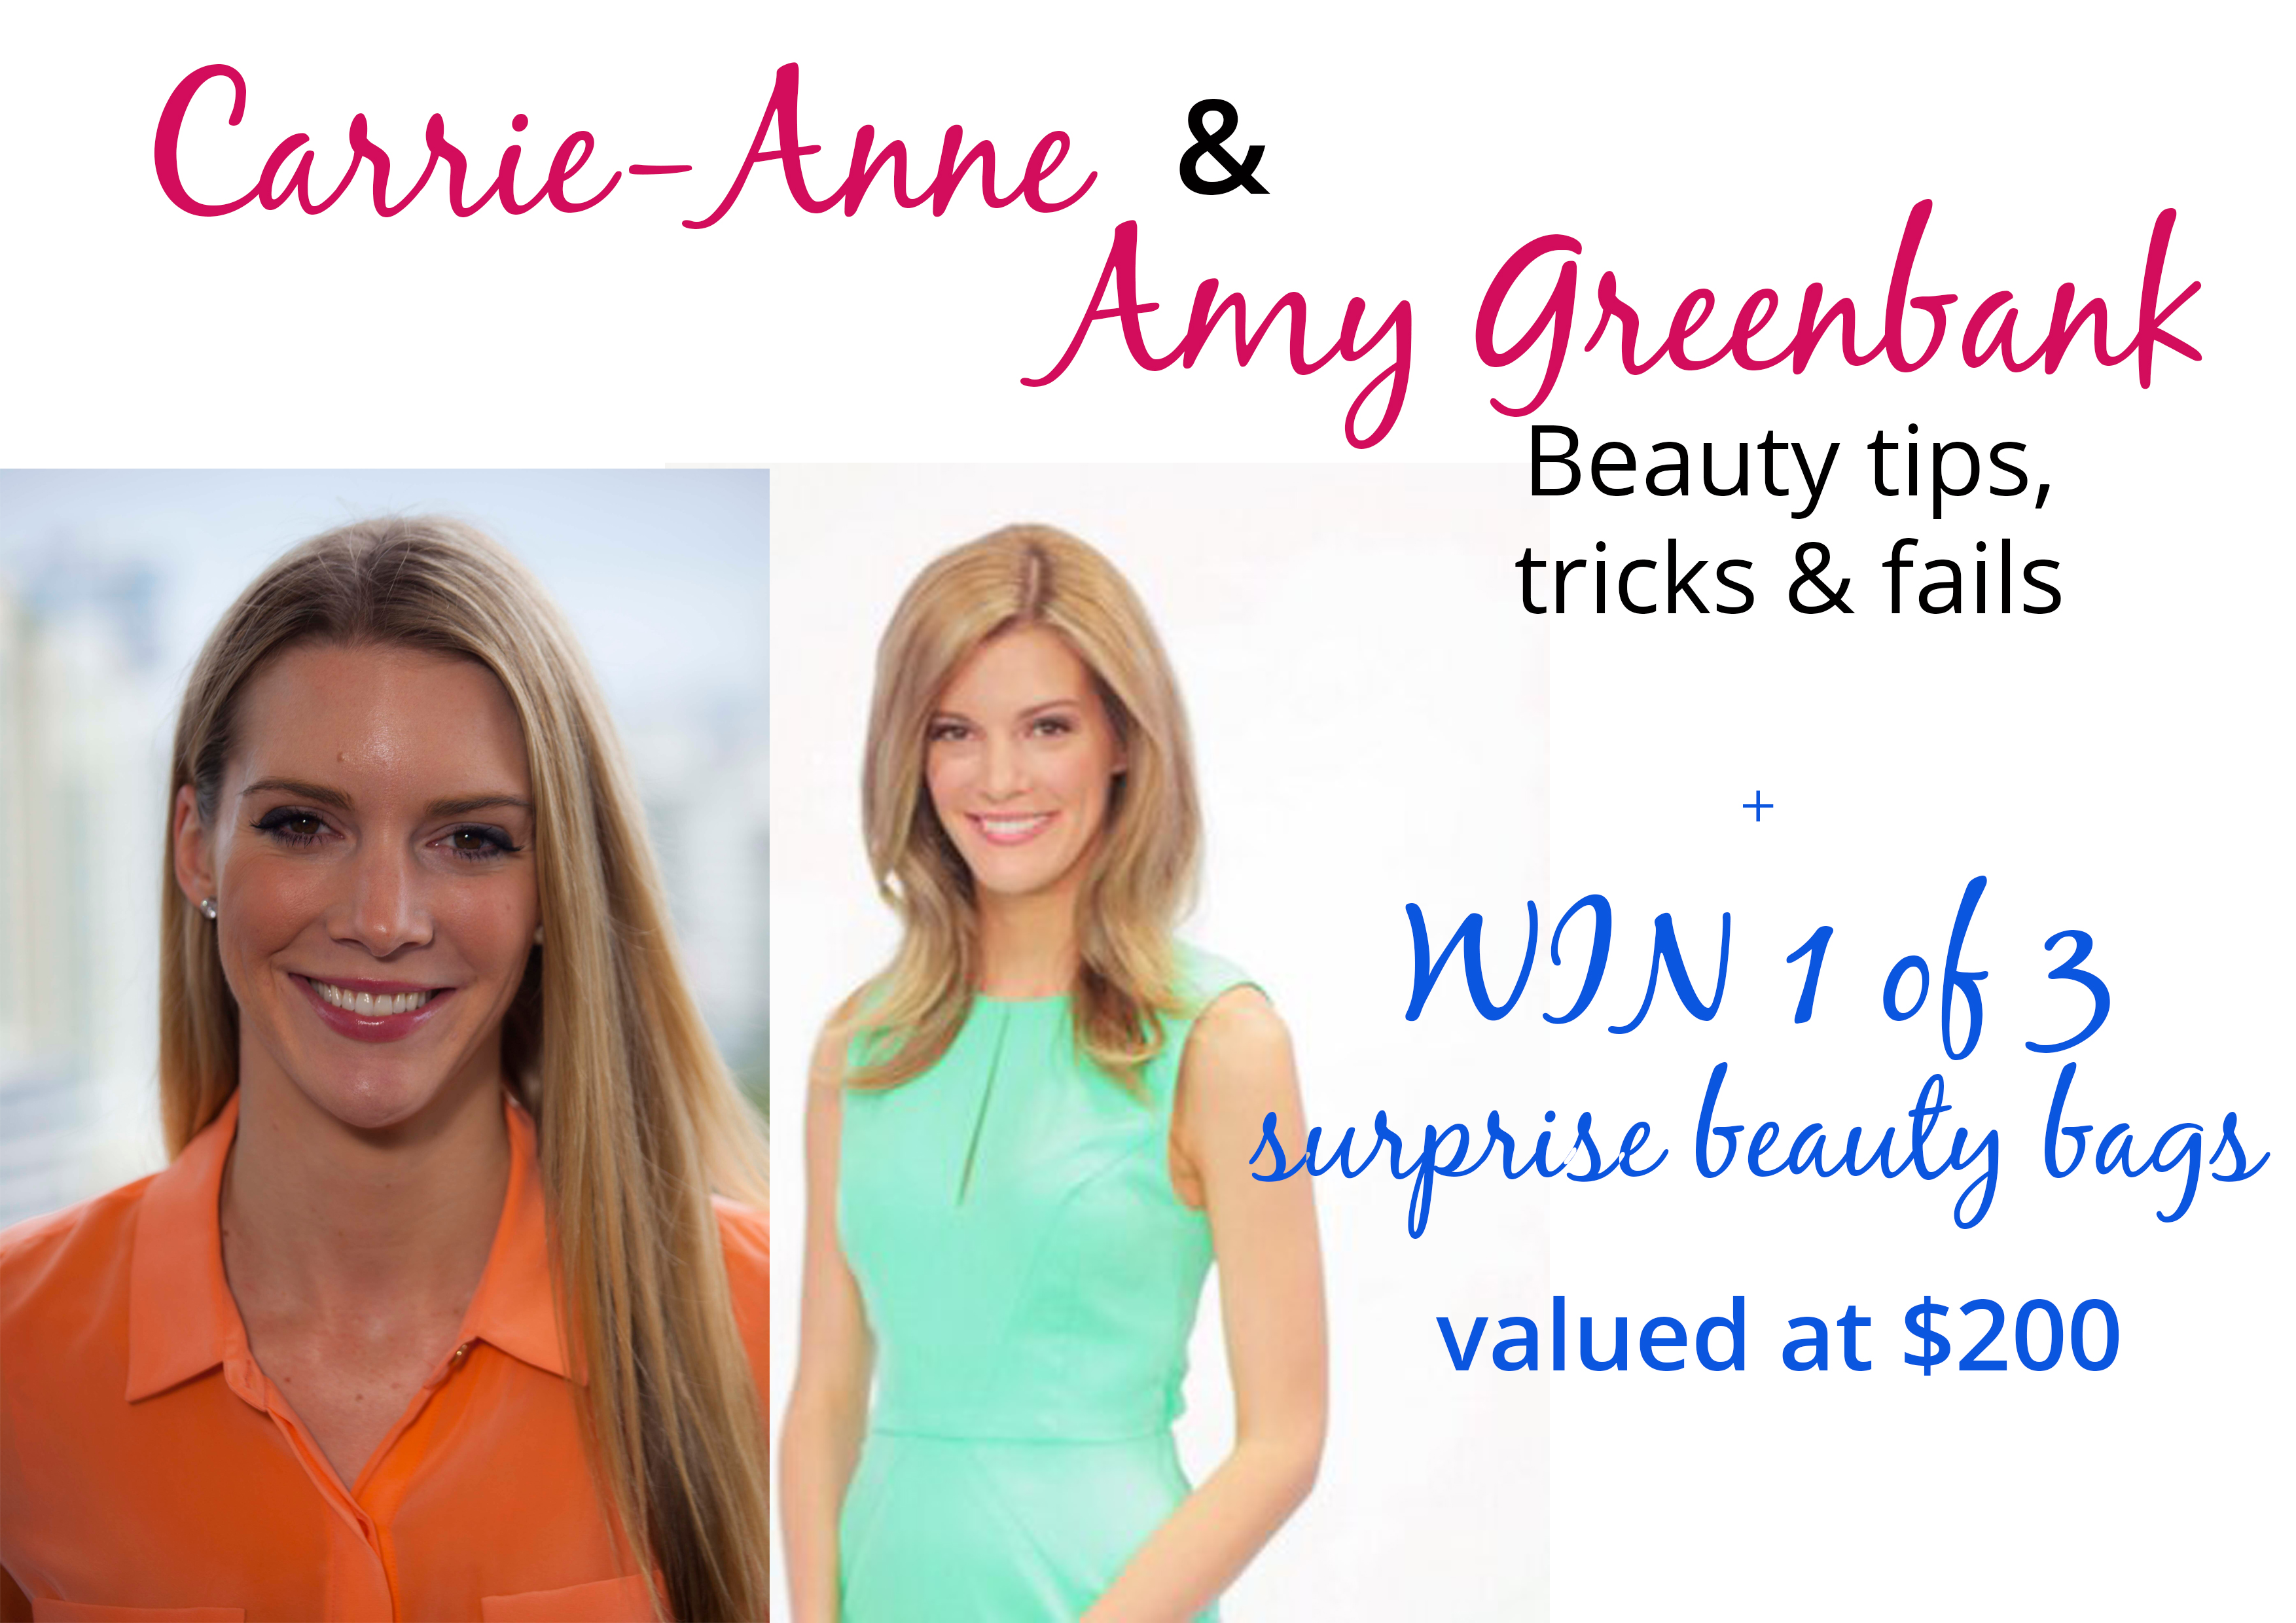 The Greenbank twins beauty tips & WIN 1 of 3 surprise beauty bags valued at over $200